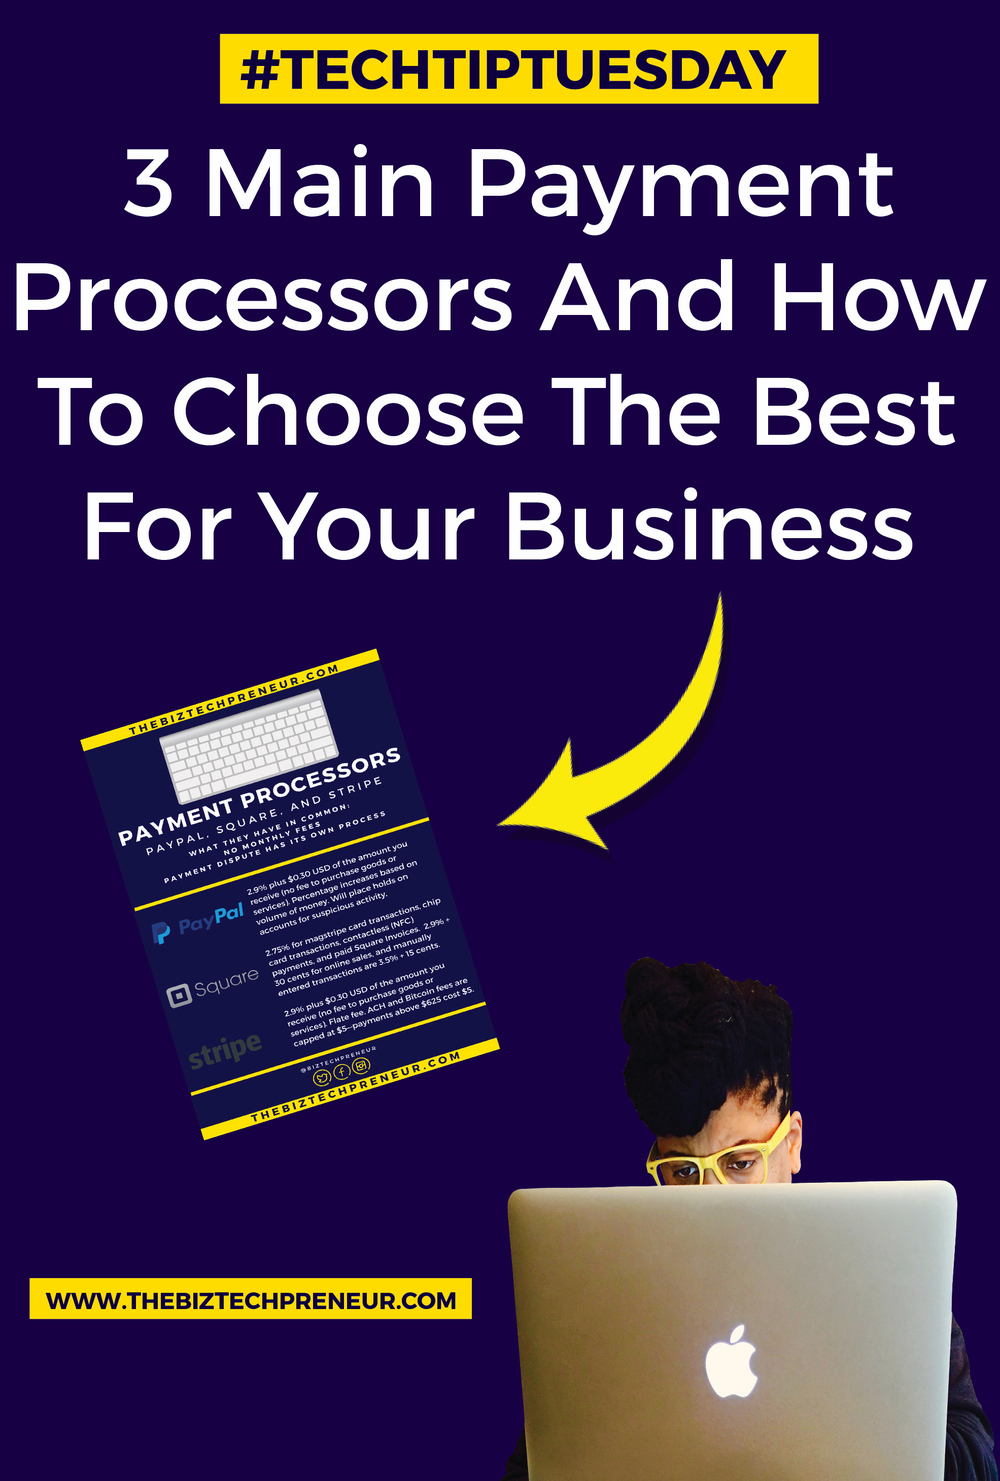 When it comes to payment processors, there are 3 that reign supreme in the online world. These 3 dominate most e-commerce platforms, websites, and digital products platforms. Here are the 3 main payment processors and how you can choose which one is best for you...